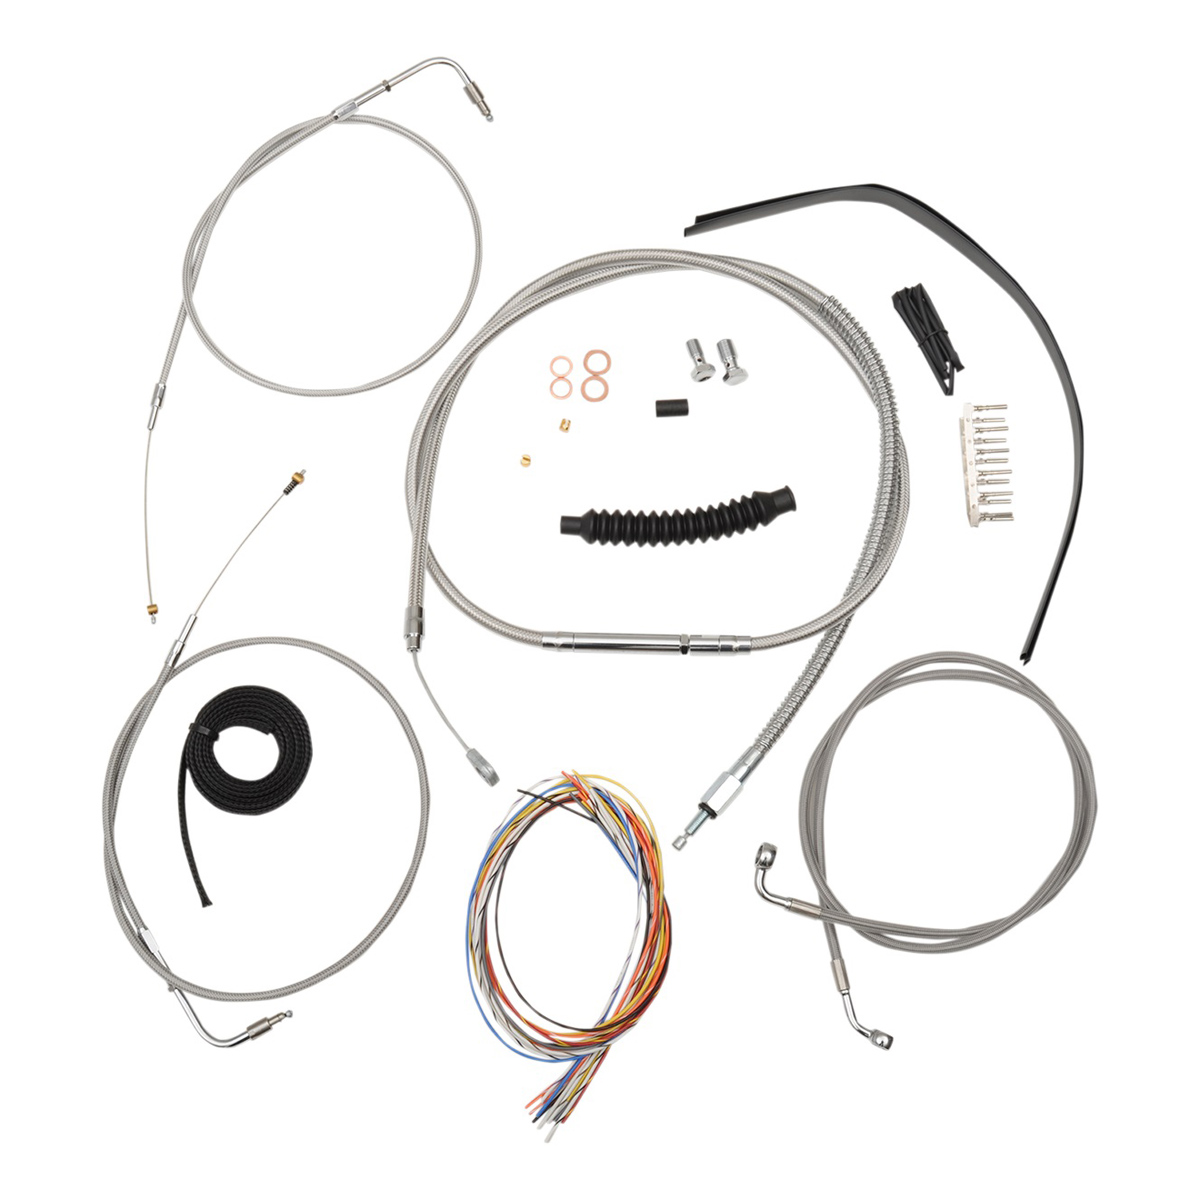 LA Choppers Stainless Complete Cable/Line/Wiring Handlebar Kit for 12″-14″ Bars on Models without ABS